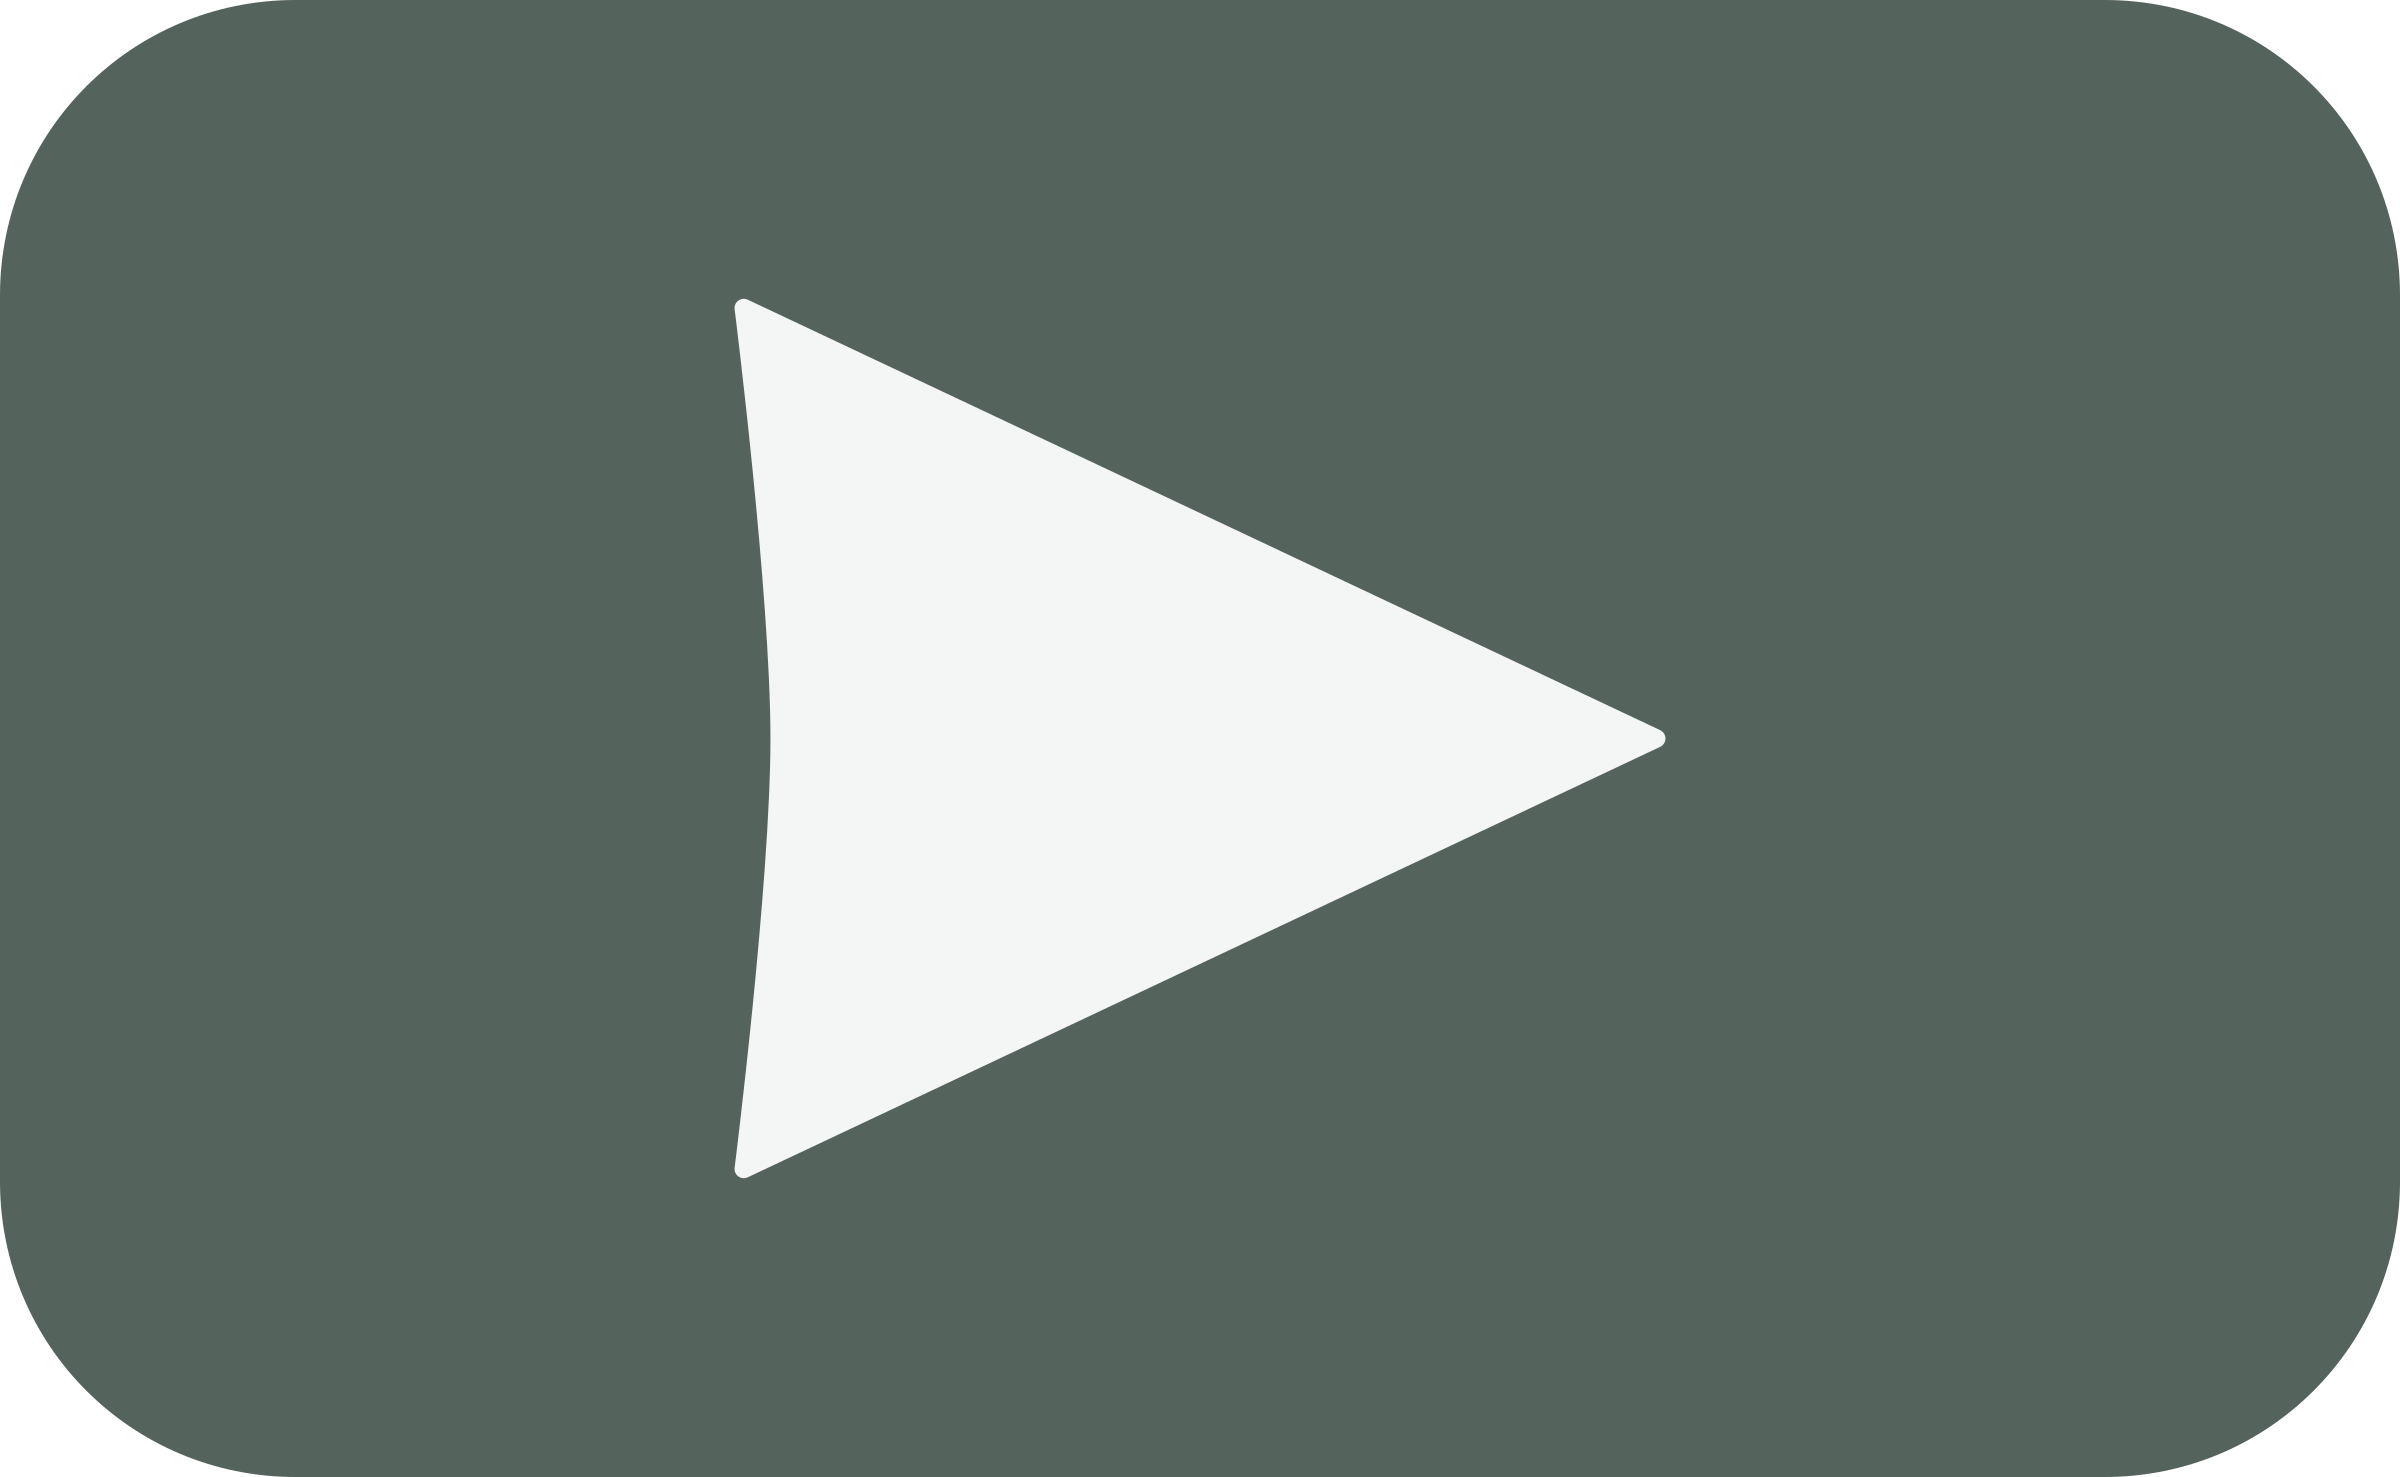 Video play big image. Square clipart icon